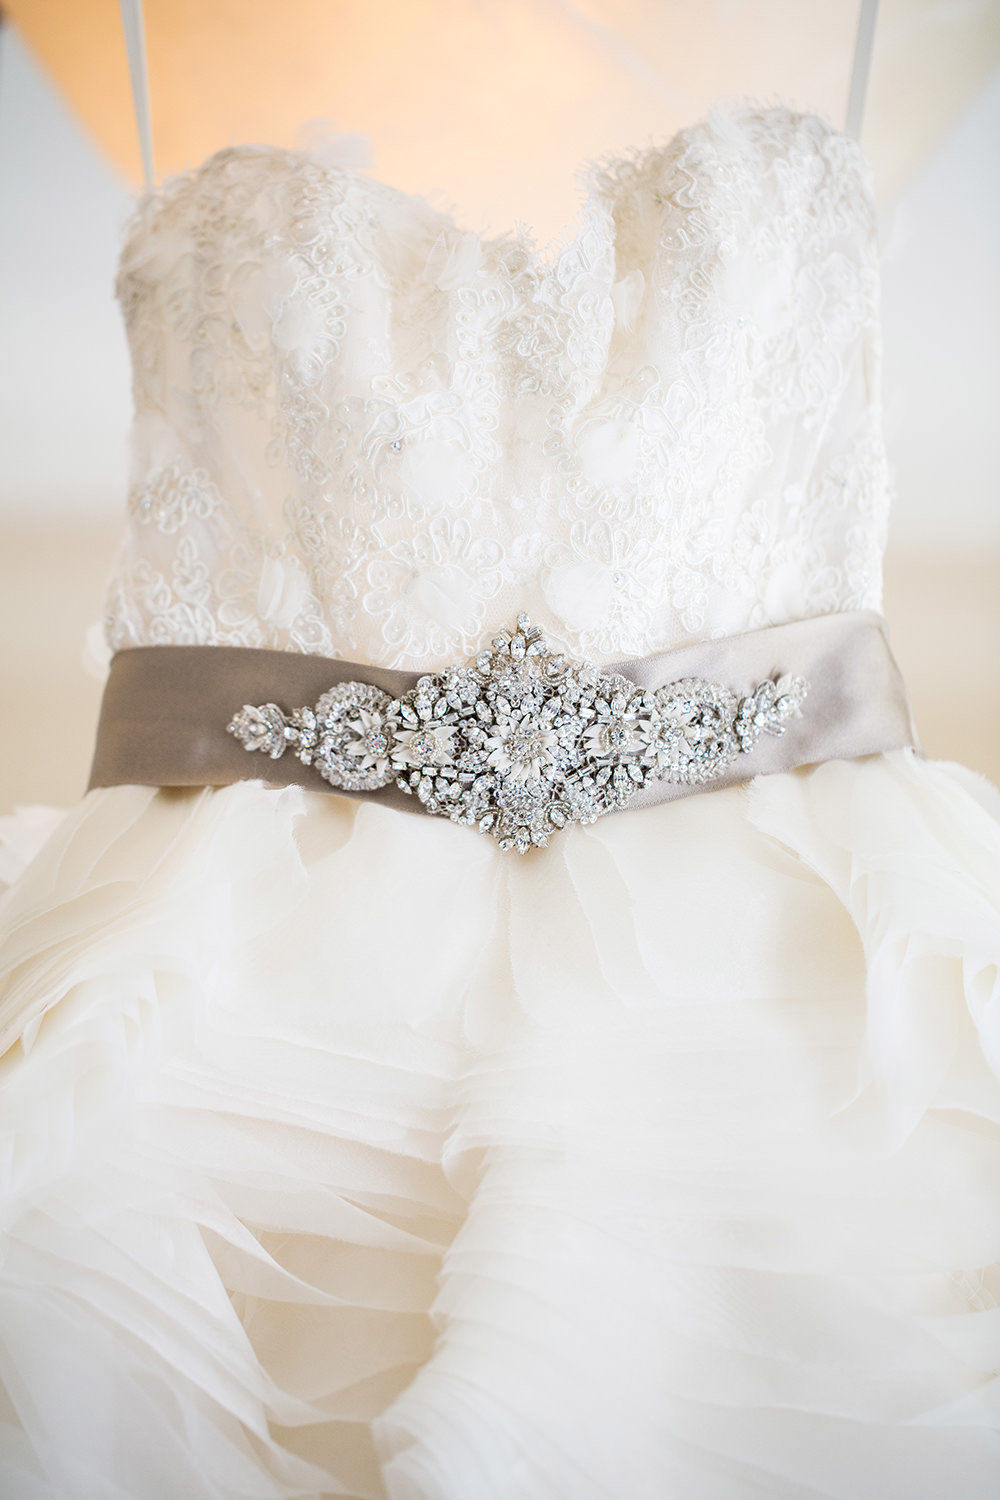 Wedding dress with lace and rhinestones